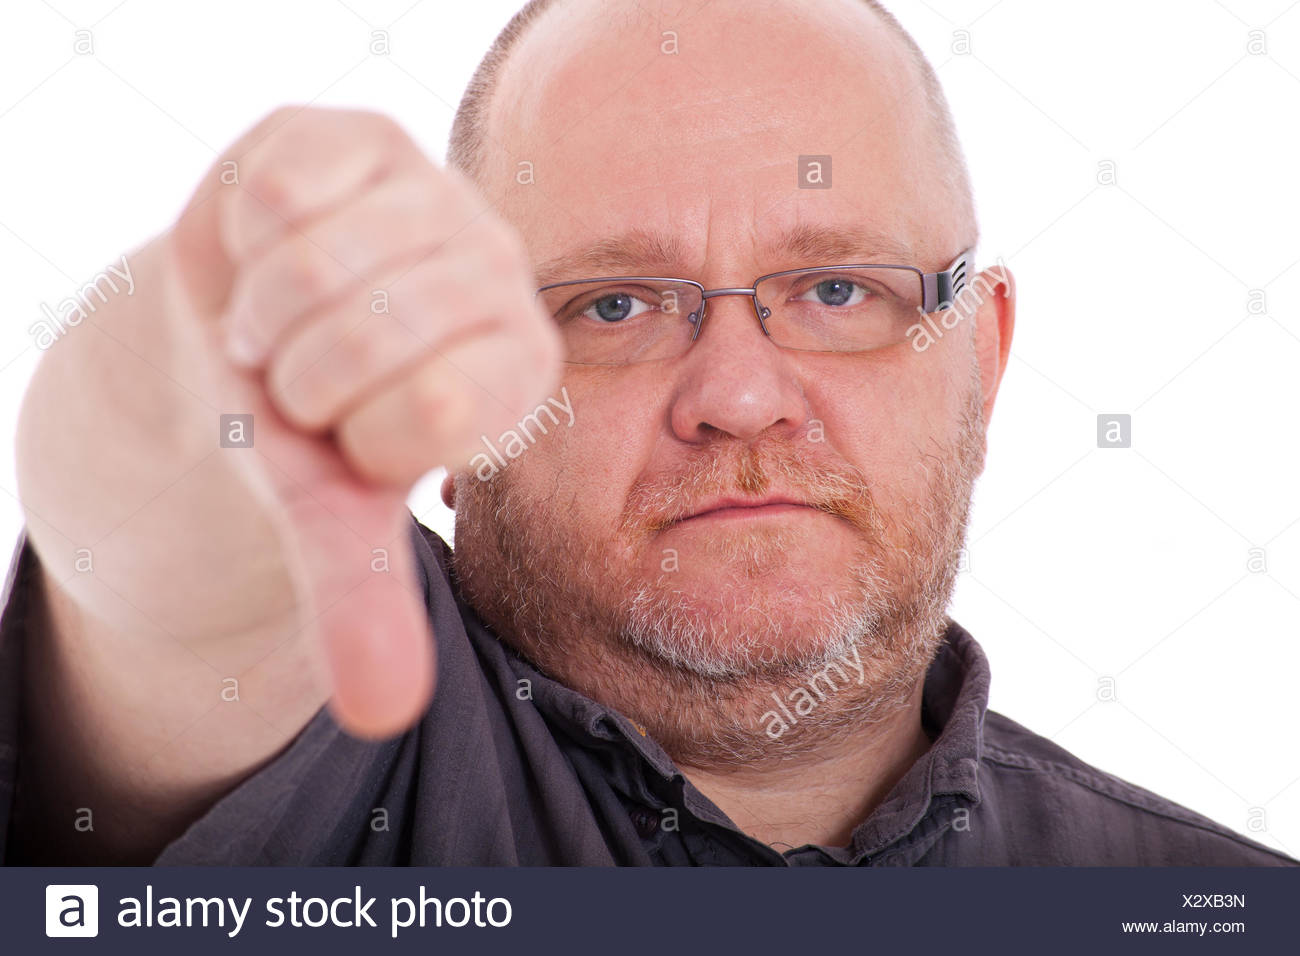 Elderly man showing thumb down - Stock Image